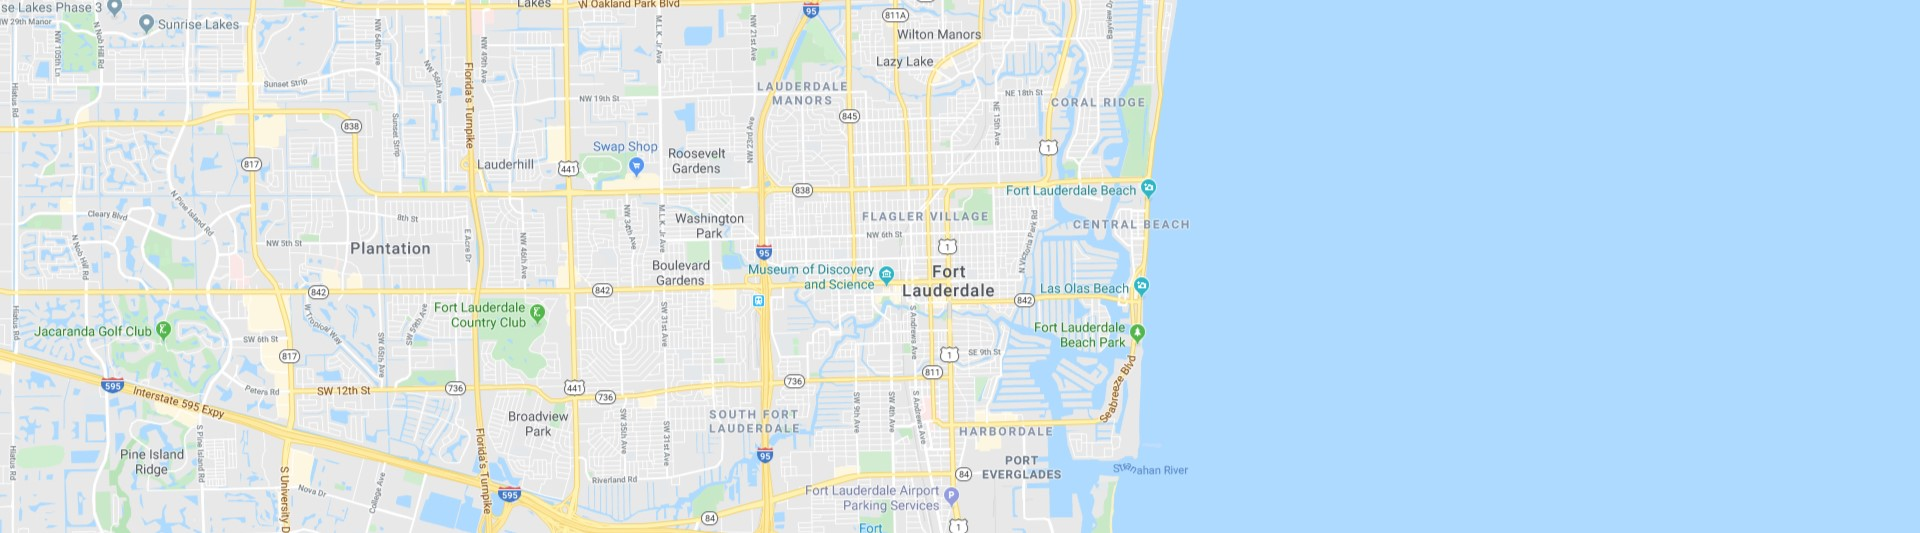 emergency clean up services Fort Lauderdale Area Florida